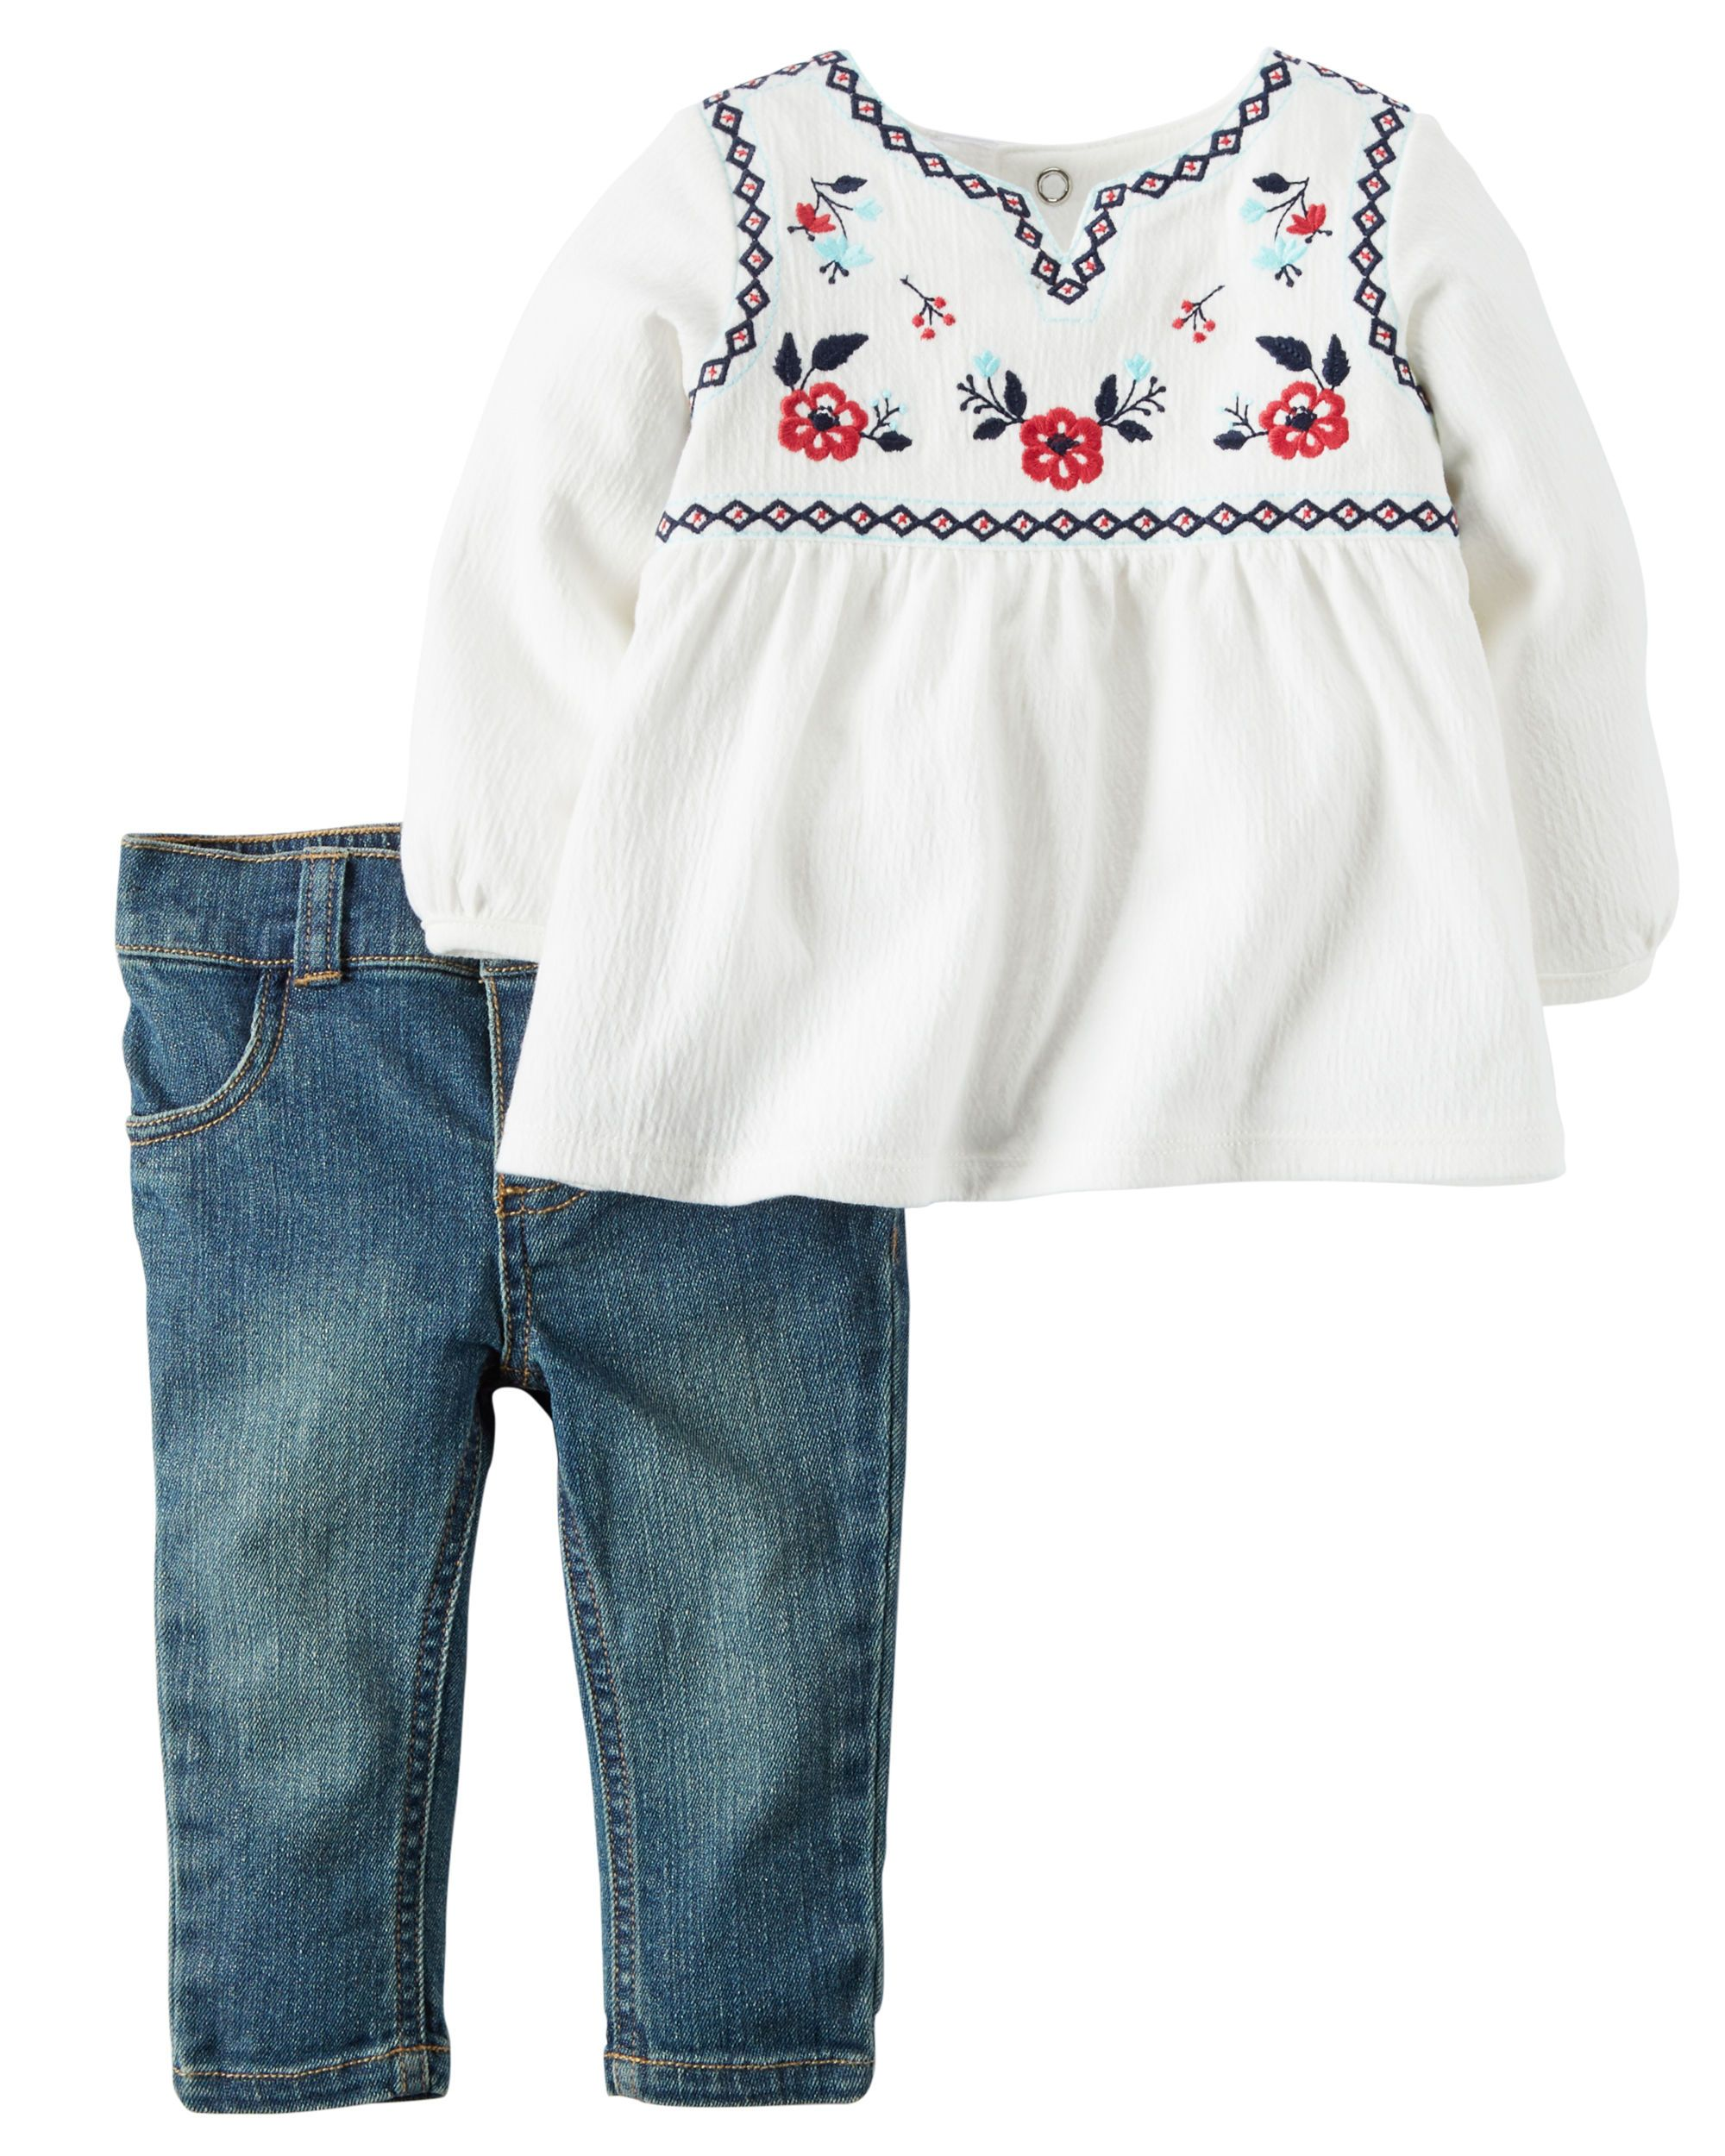 d7b378fa Complete with an embroidered babydoll tunic and stretchy denim, this  2-piece set is perfect for picture day.